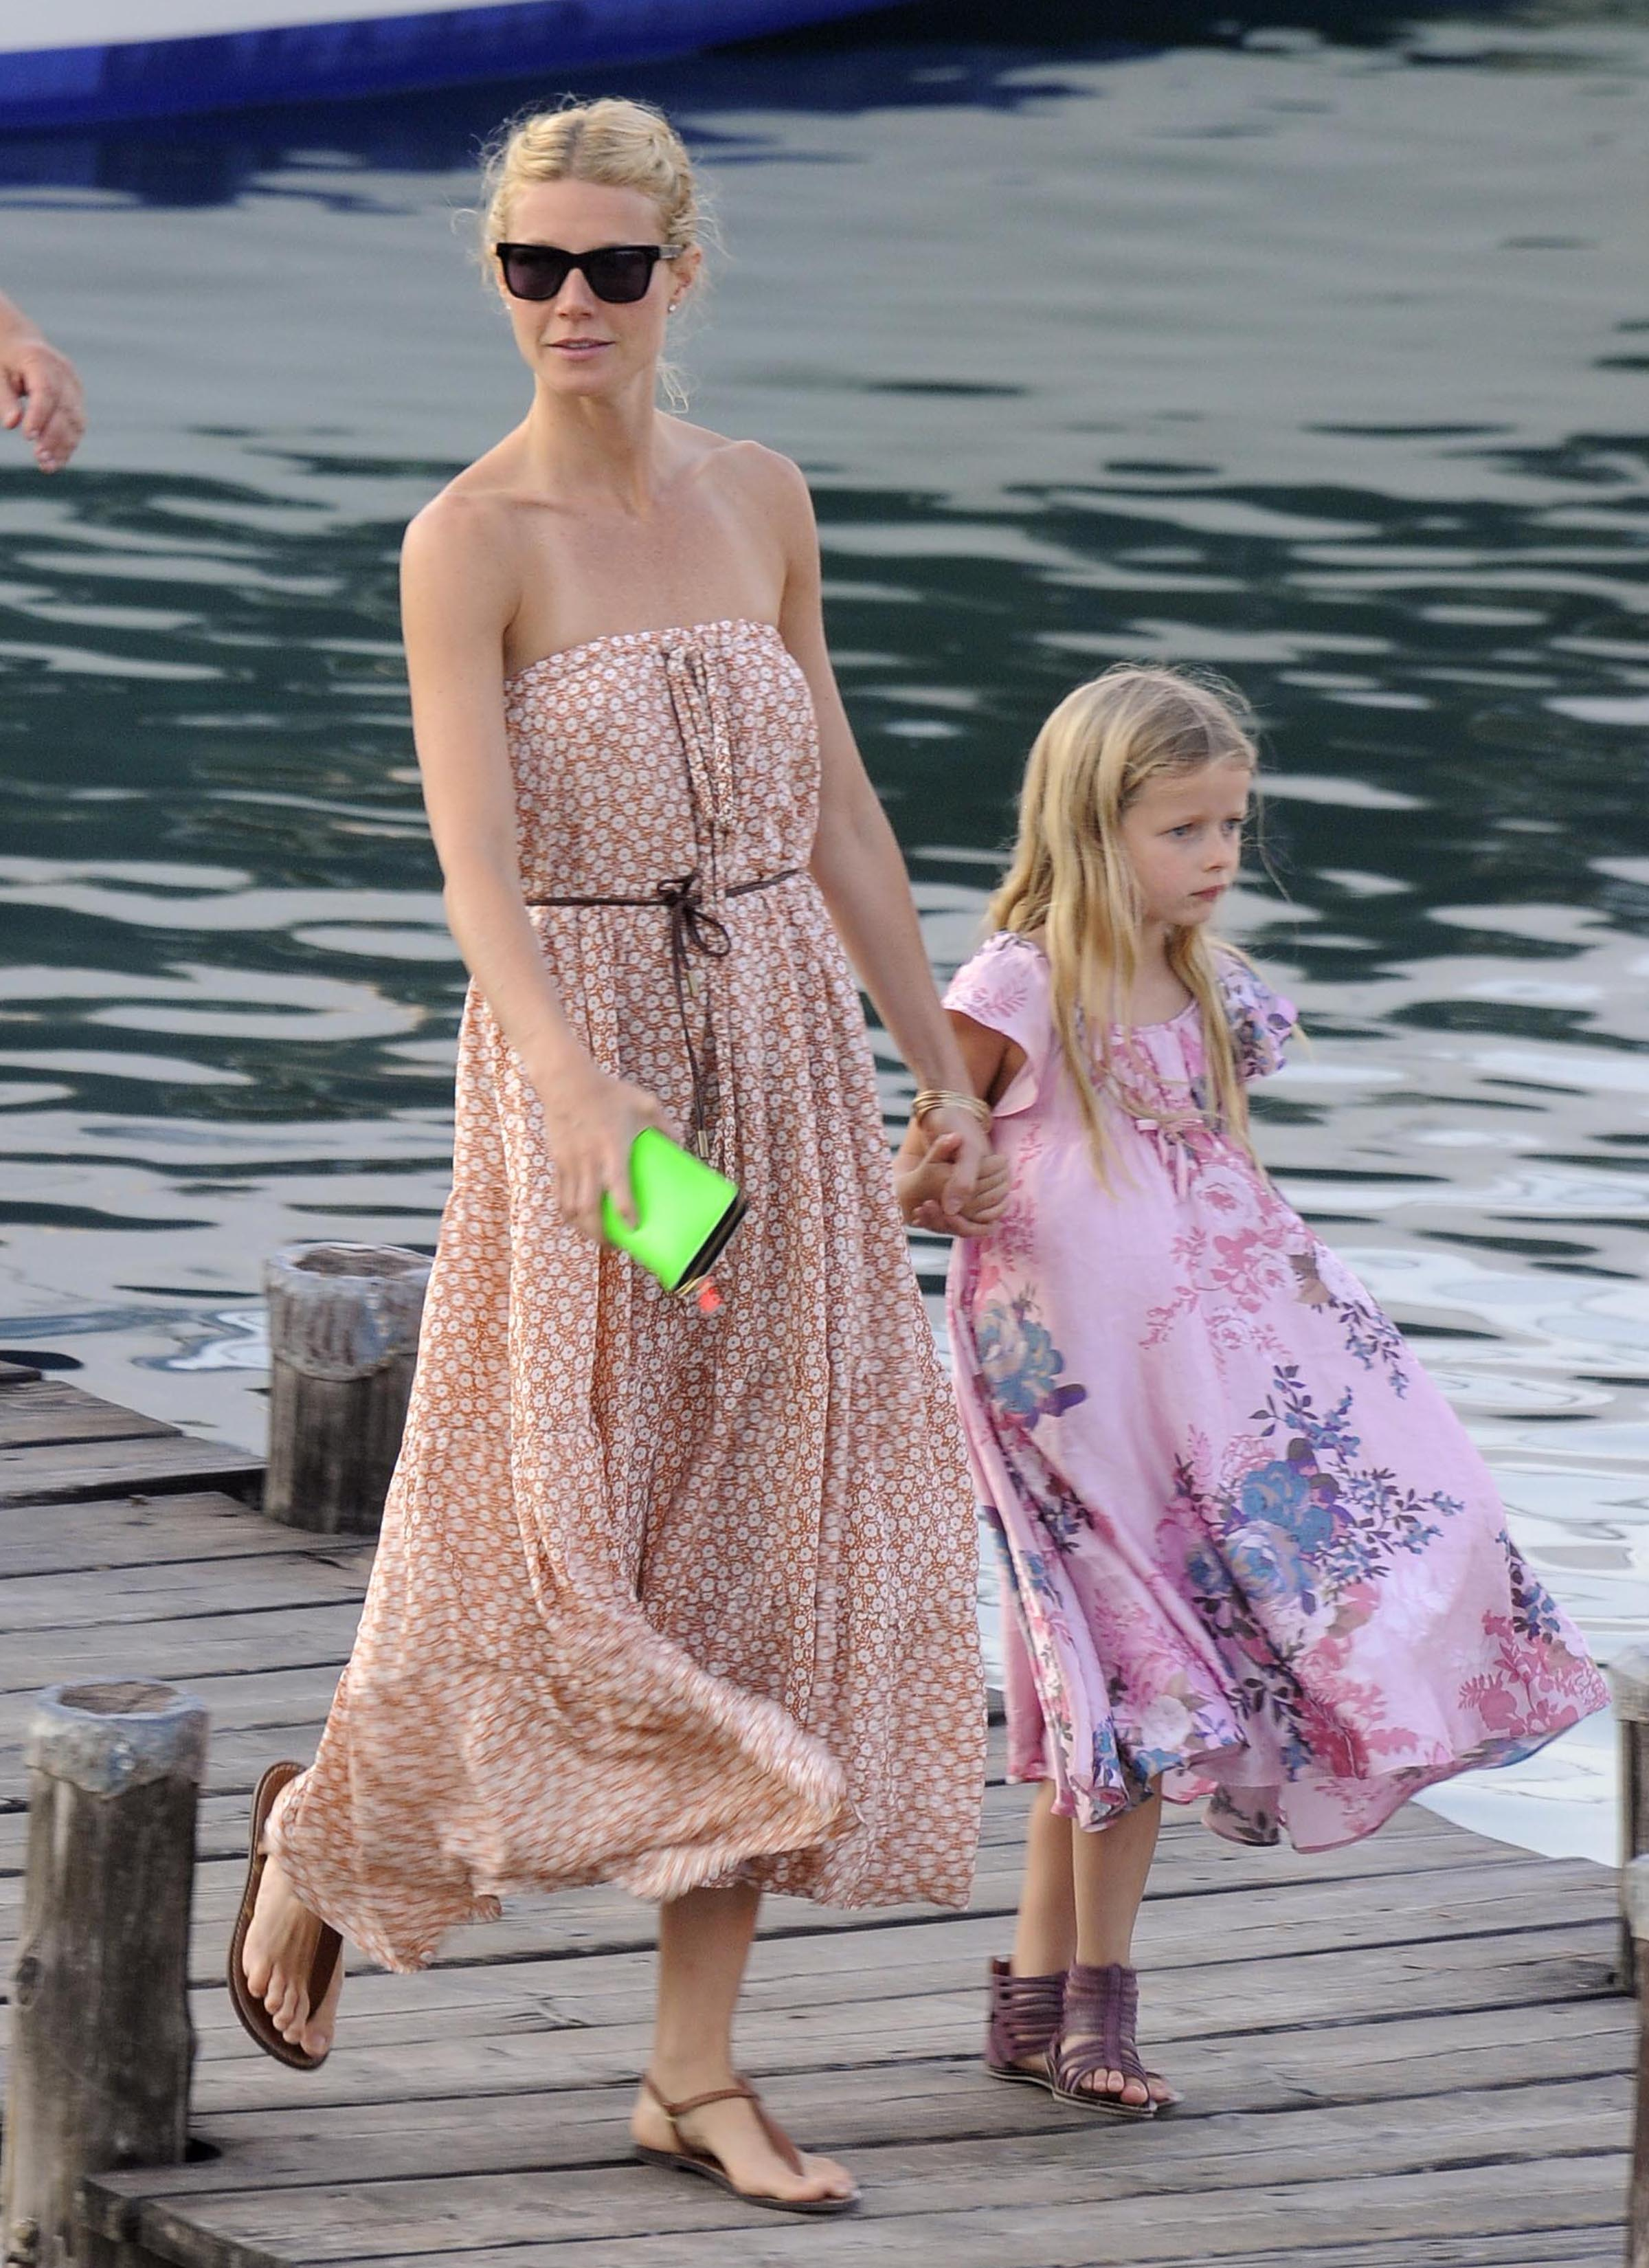 gwyneth paltrow explains the name quotapplequot todays parent